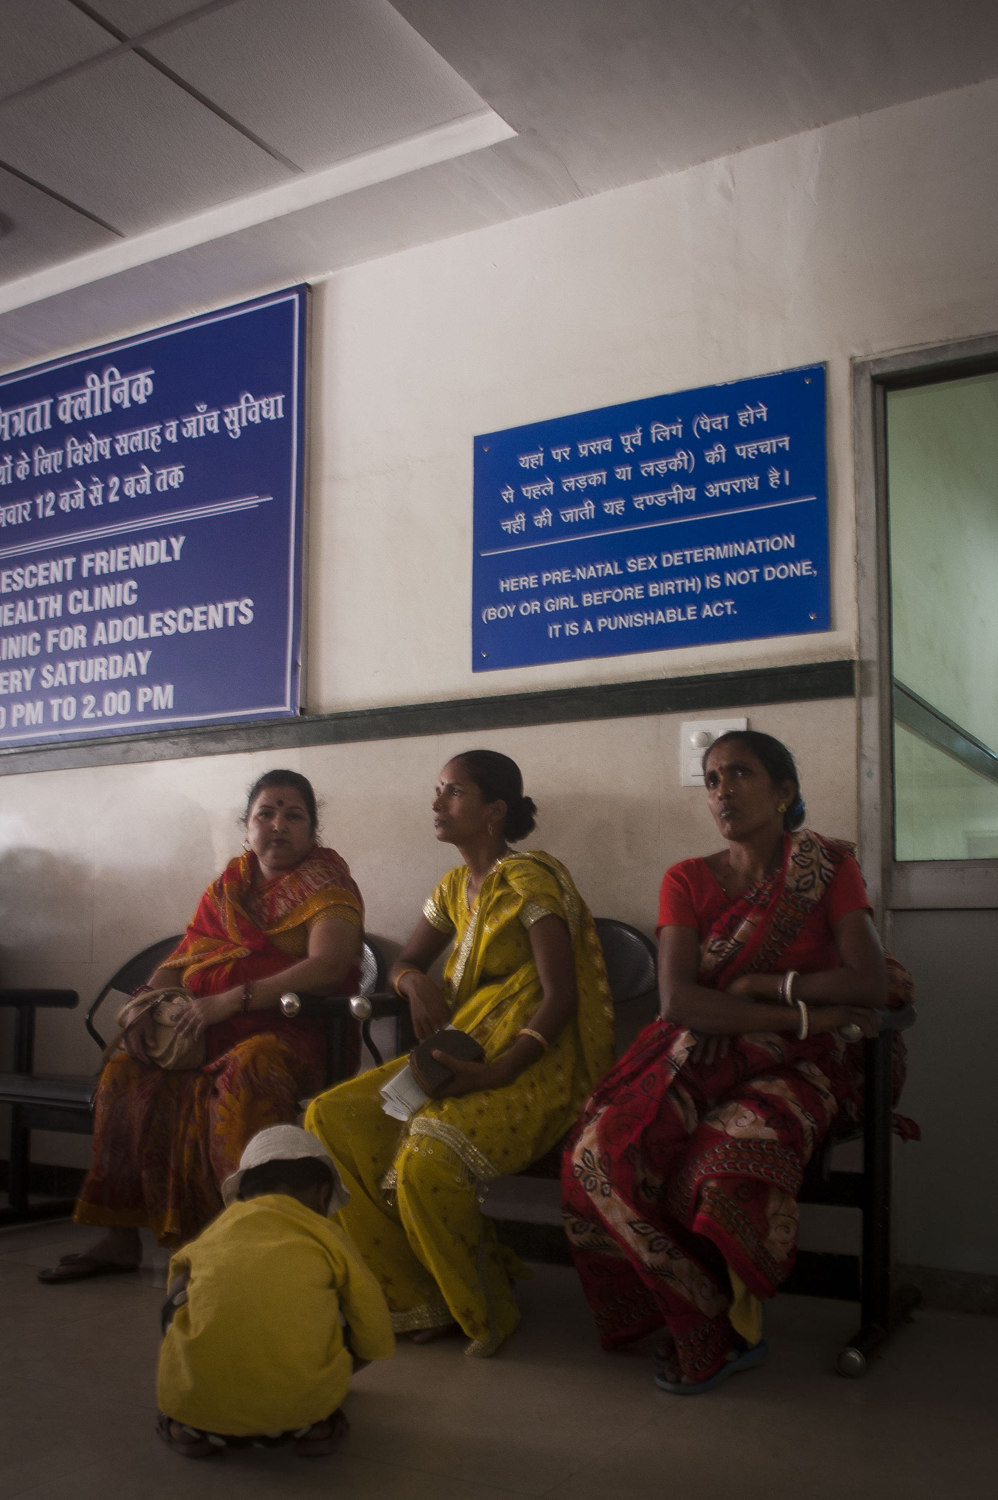 Woman in front of a sign declaring that ultrasounds to determine sex are illegal at the Gurgaon Hospital outside of New Delhi, India.